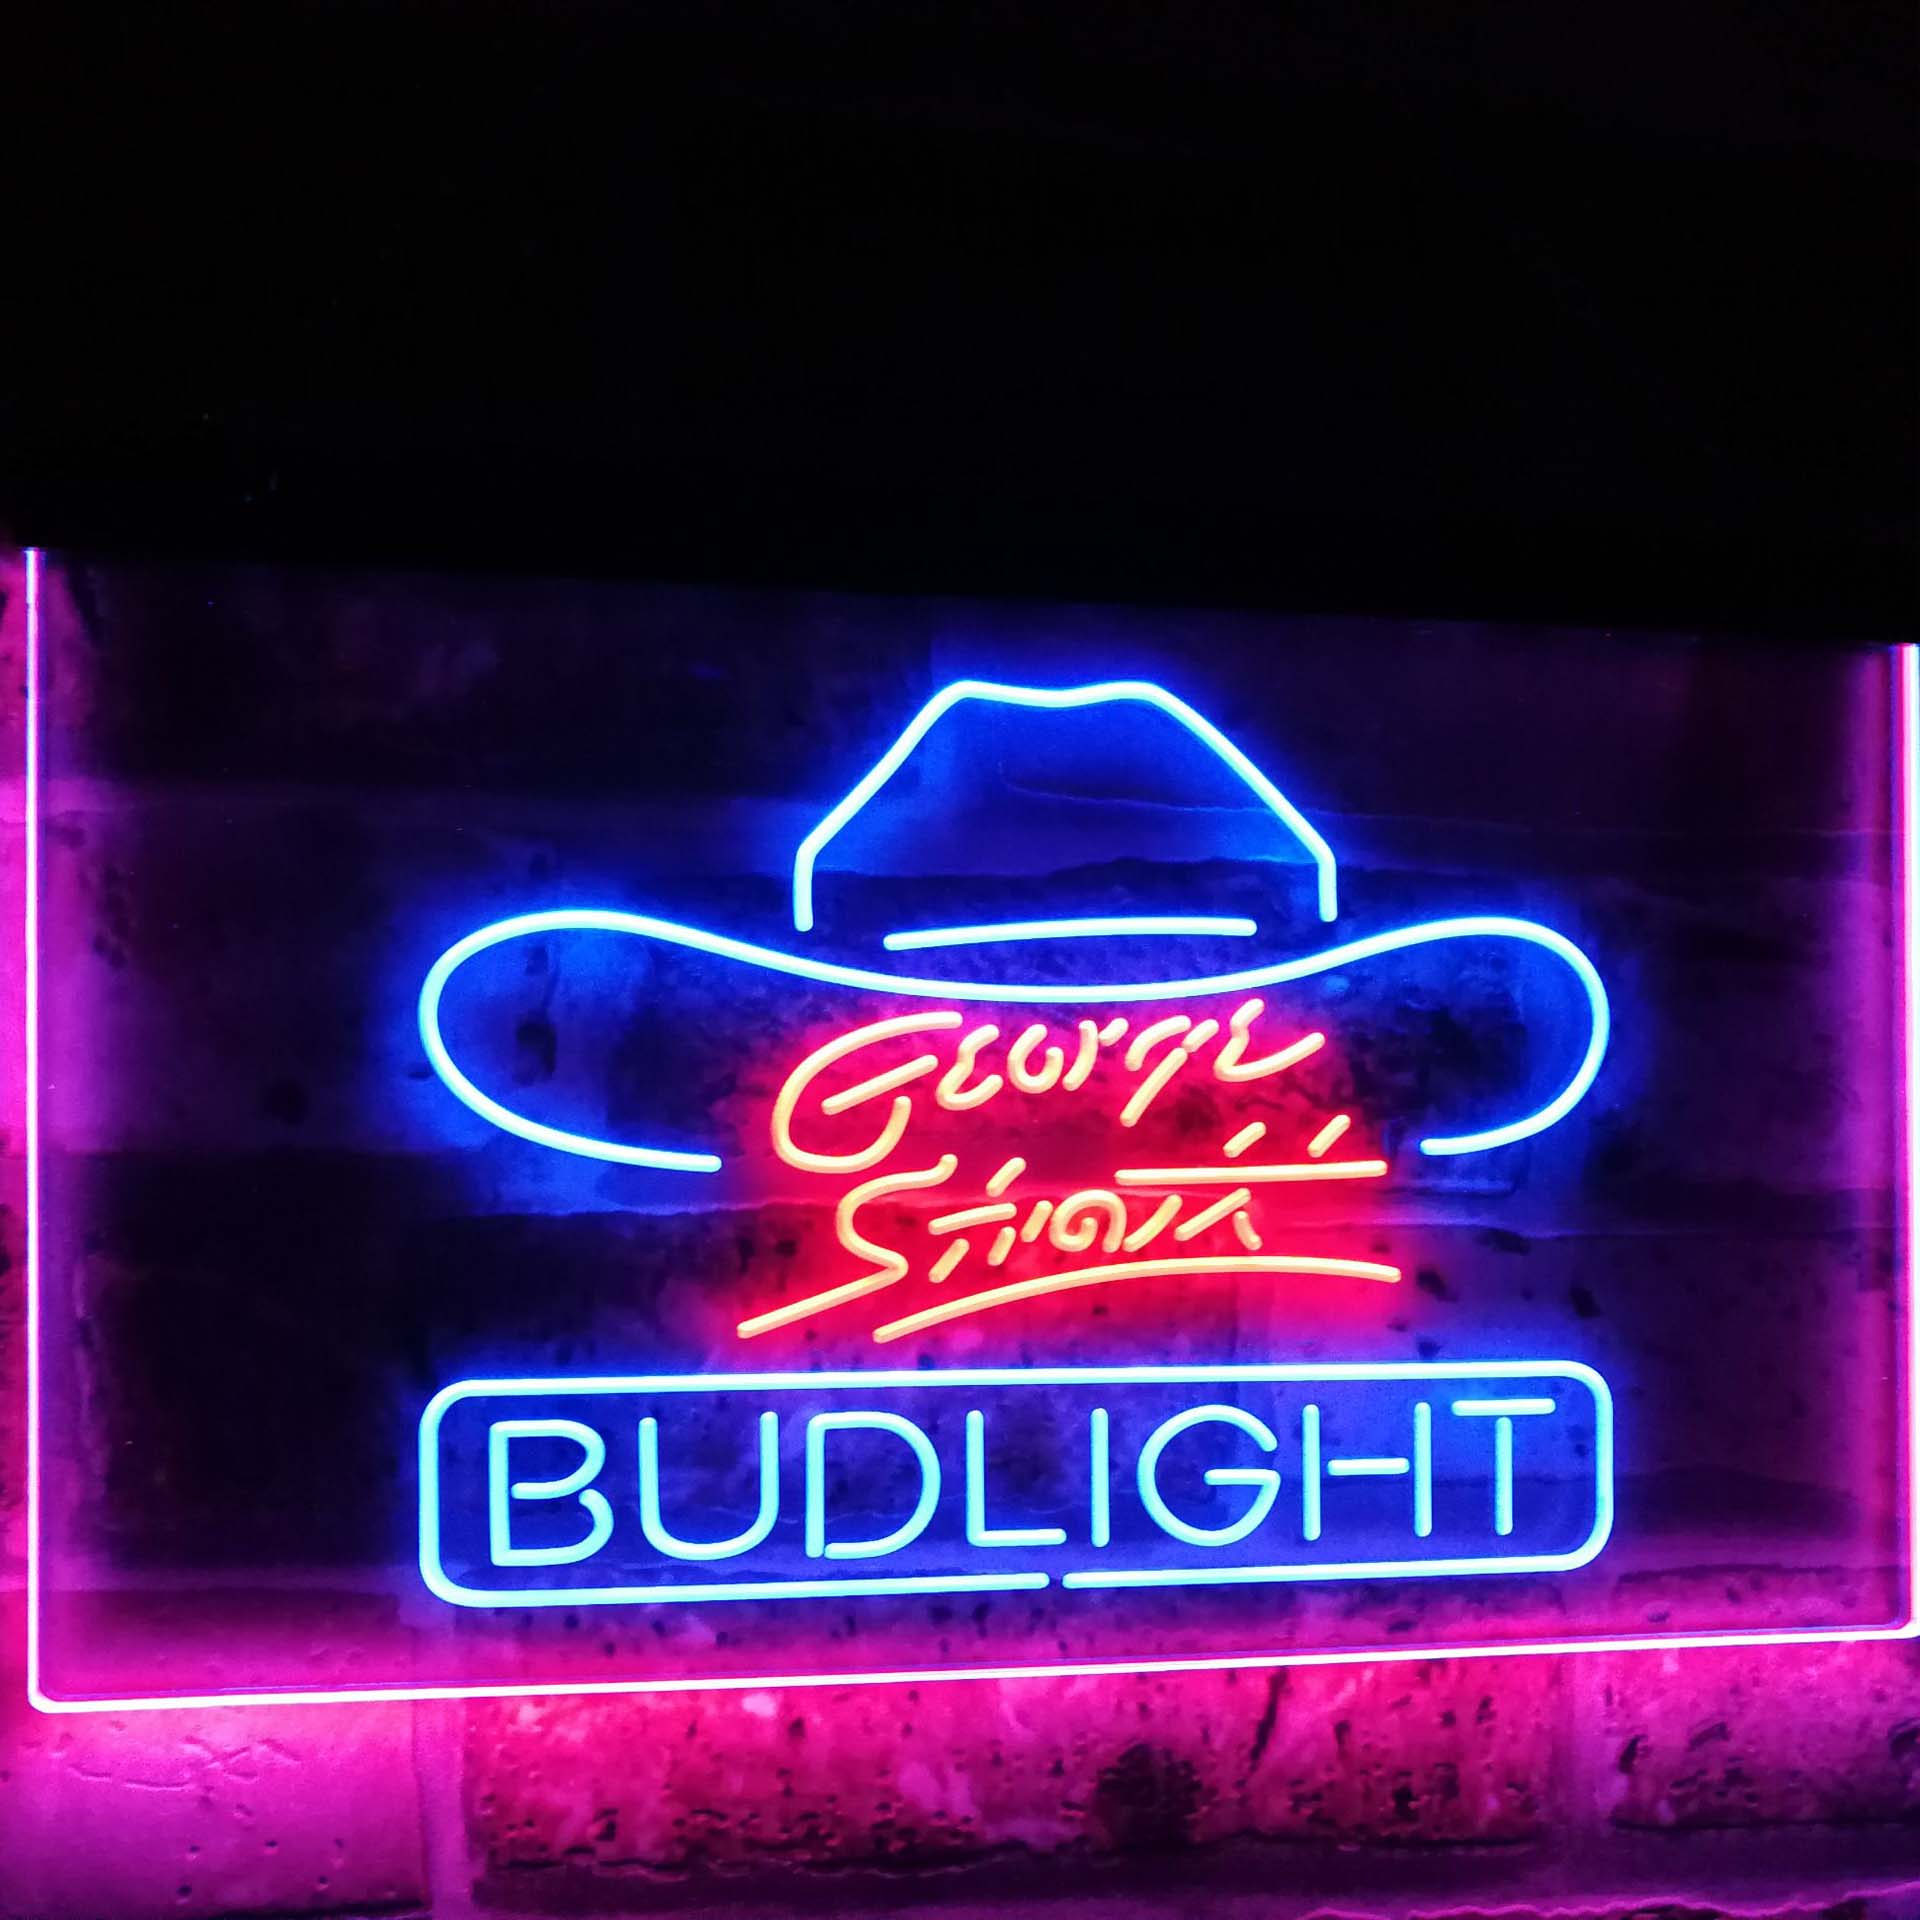 George Strait Bud Light Music Beer Bar Decor Dual Color Led Neon Sign st6 a2116